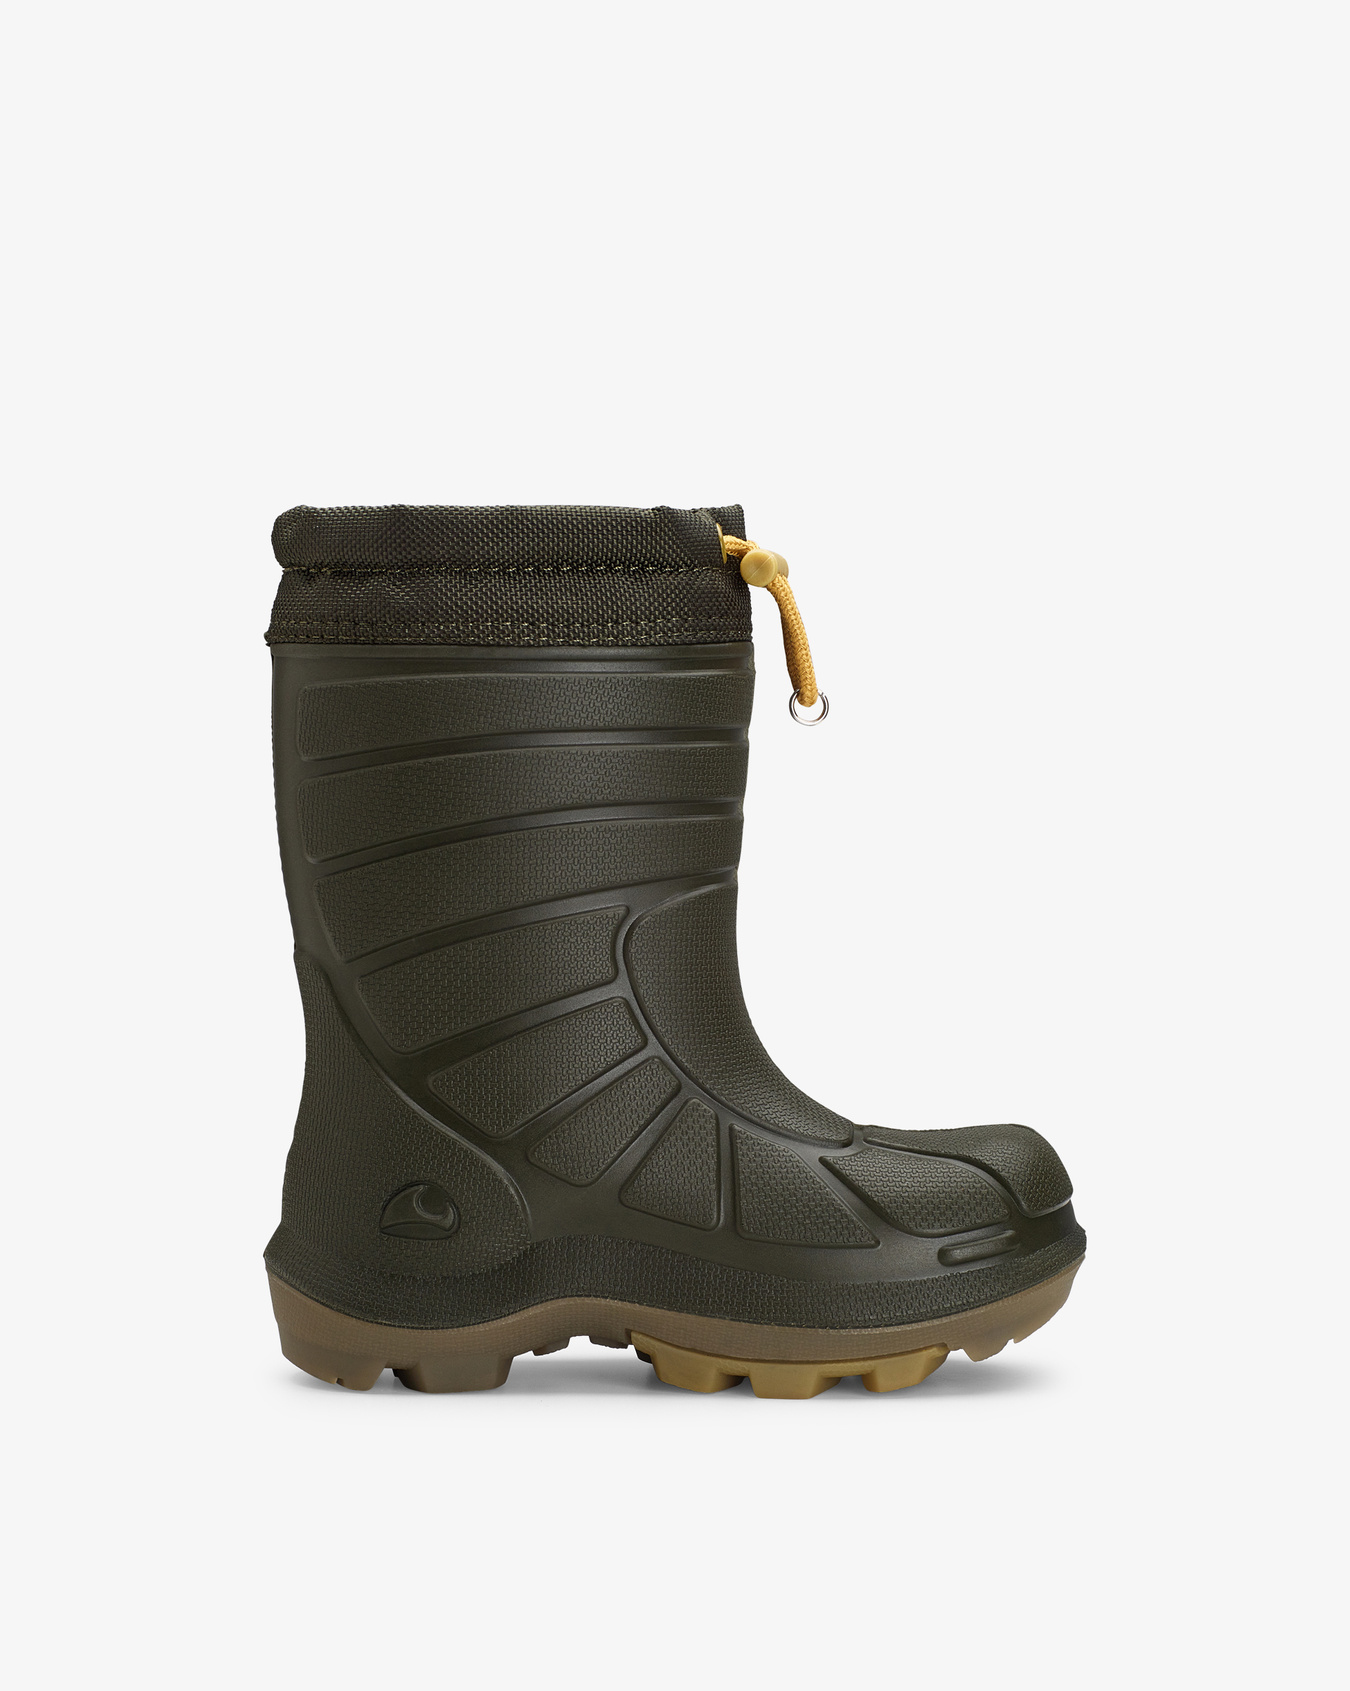 Extreme Hunting Green/Khaki Thermo Boots